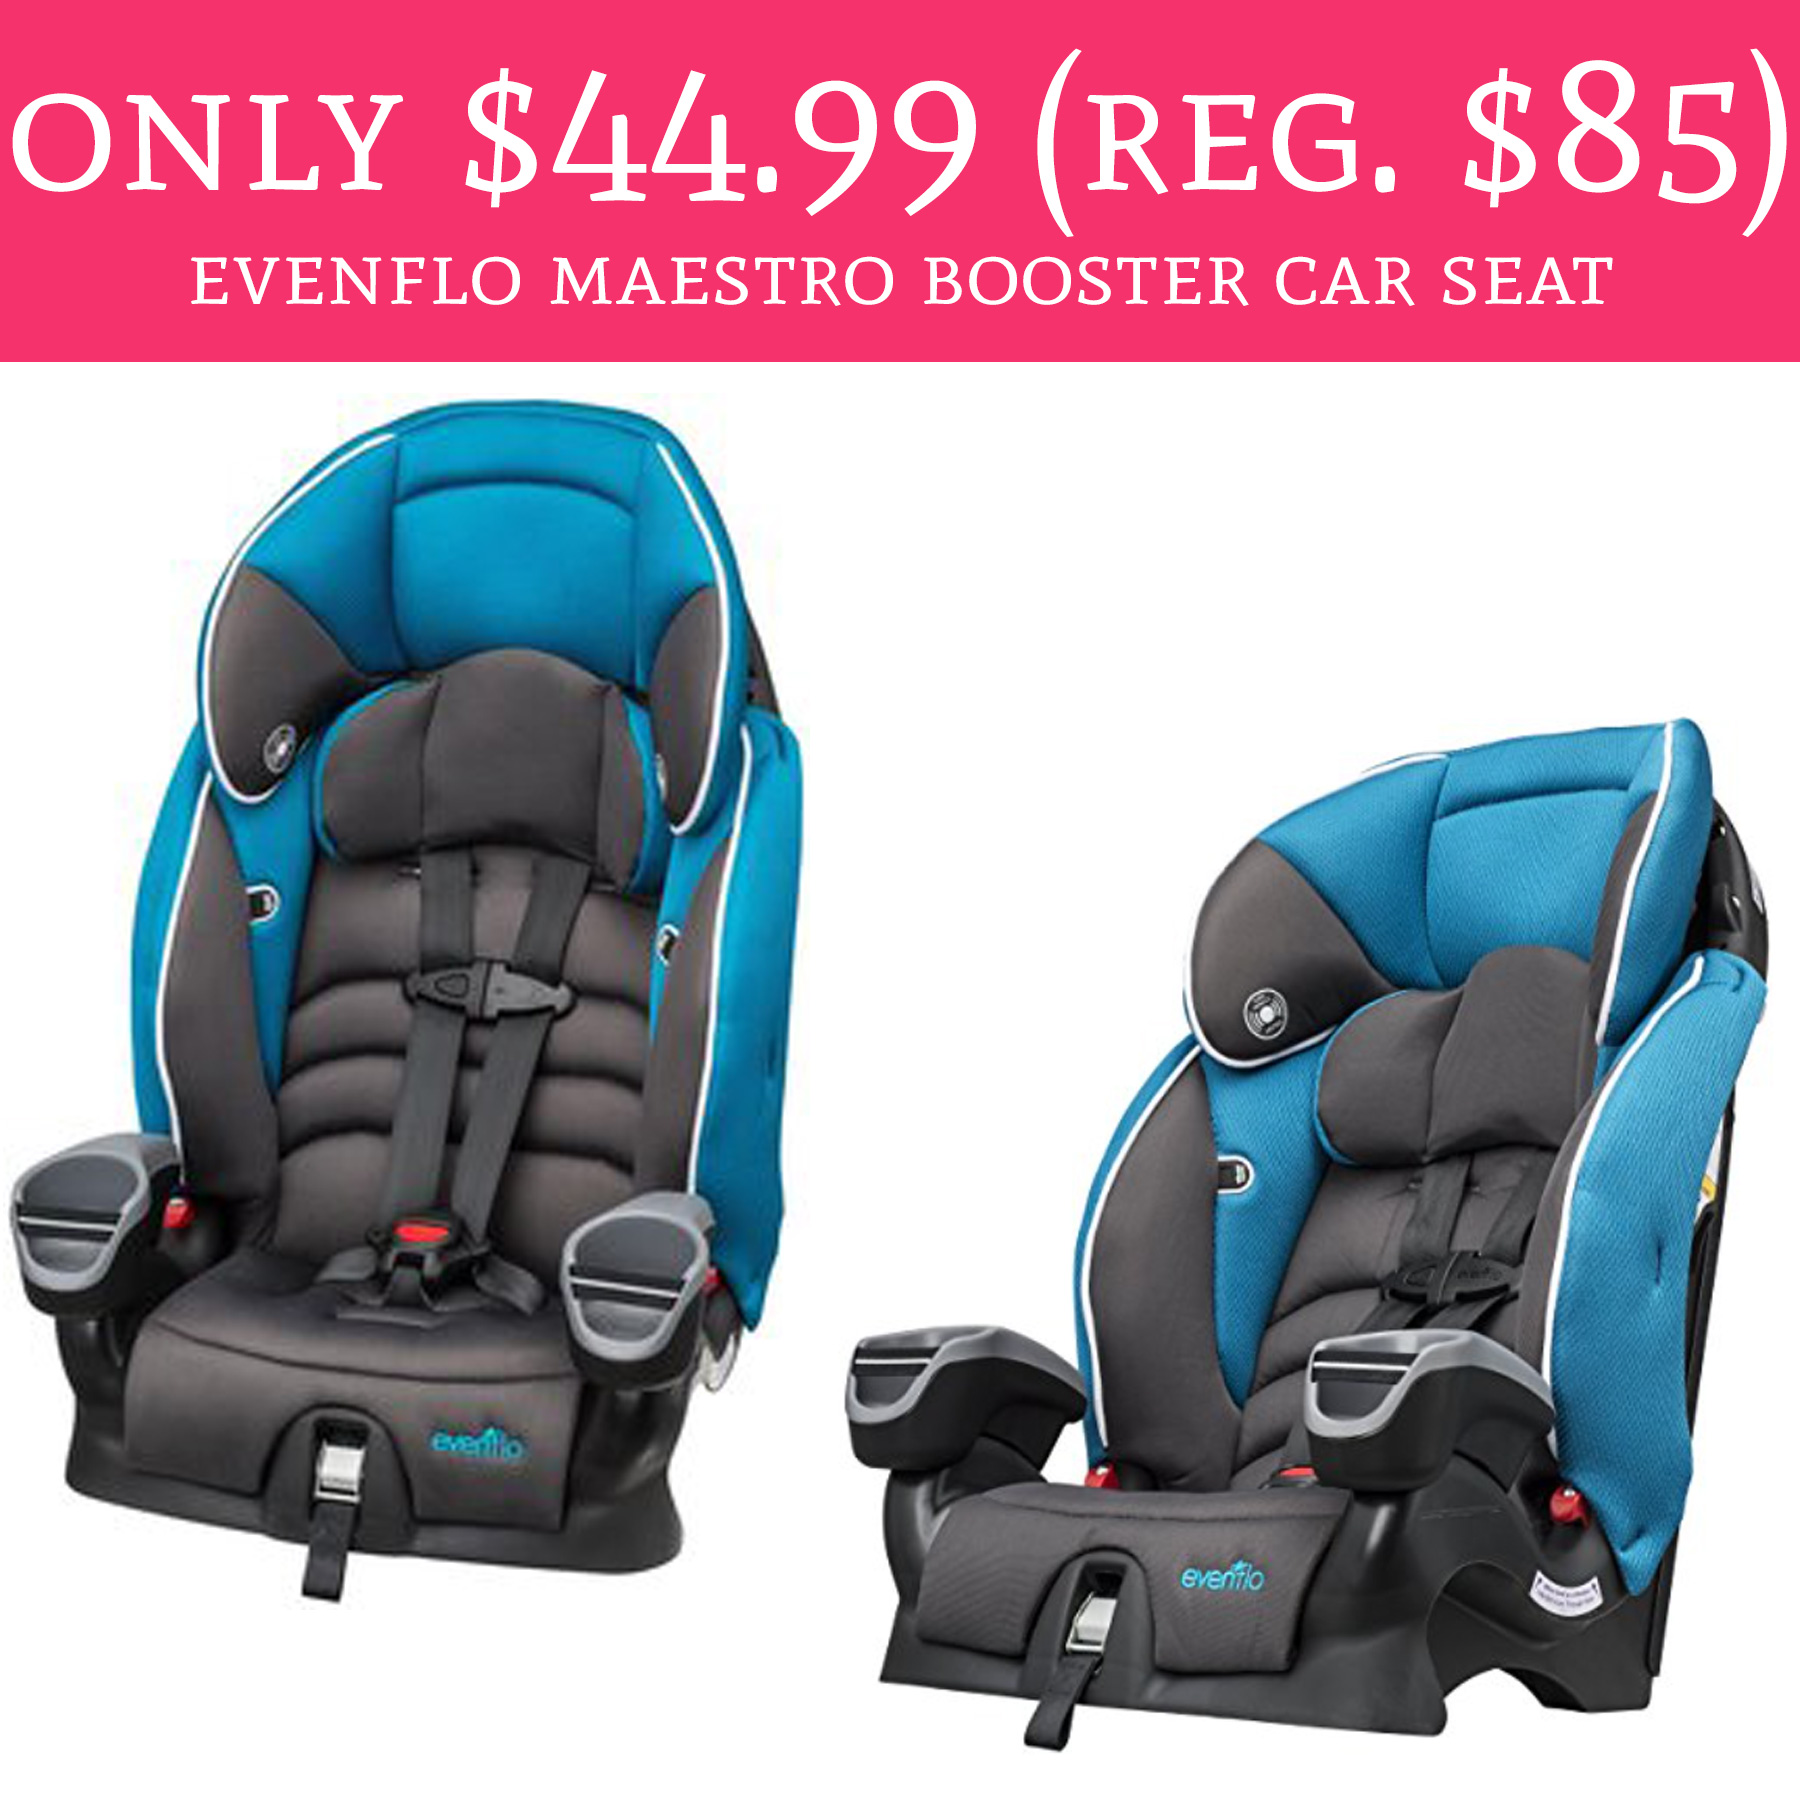 only regular 85 evenflo maestro booster car seat free shipping deal hunting babe. Black Bedroom Furniture Sets. Home Design Ideas